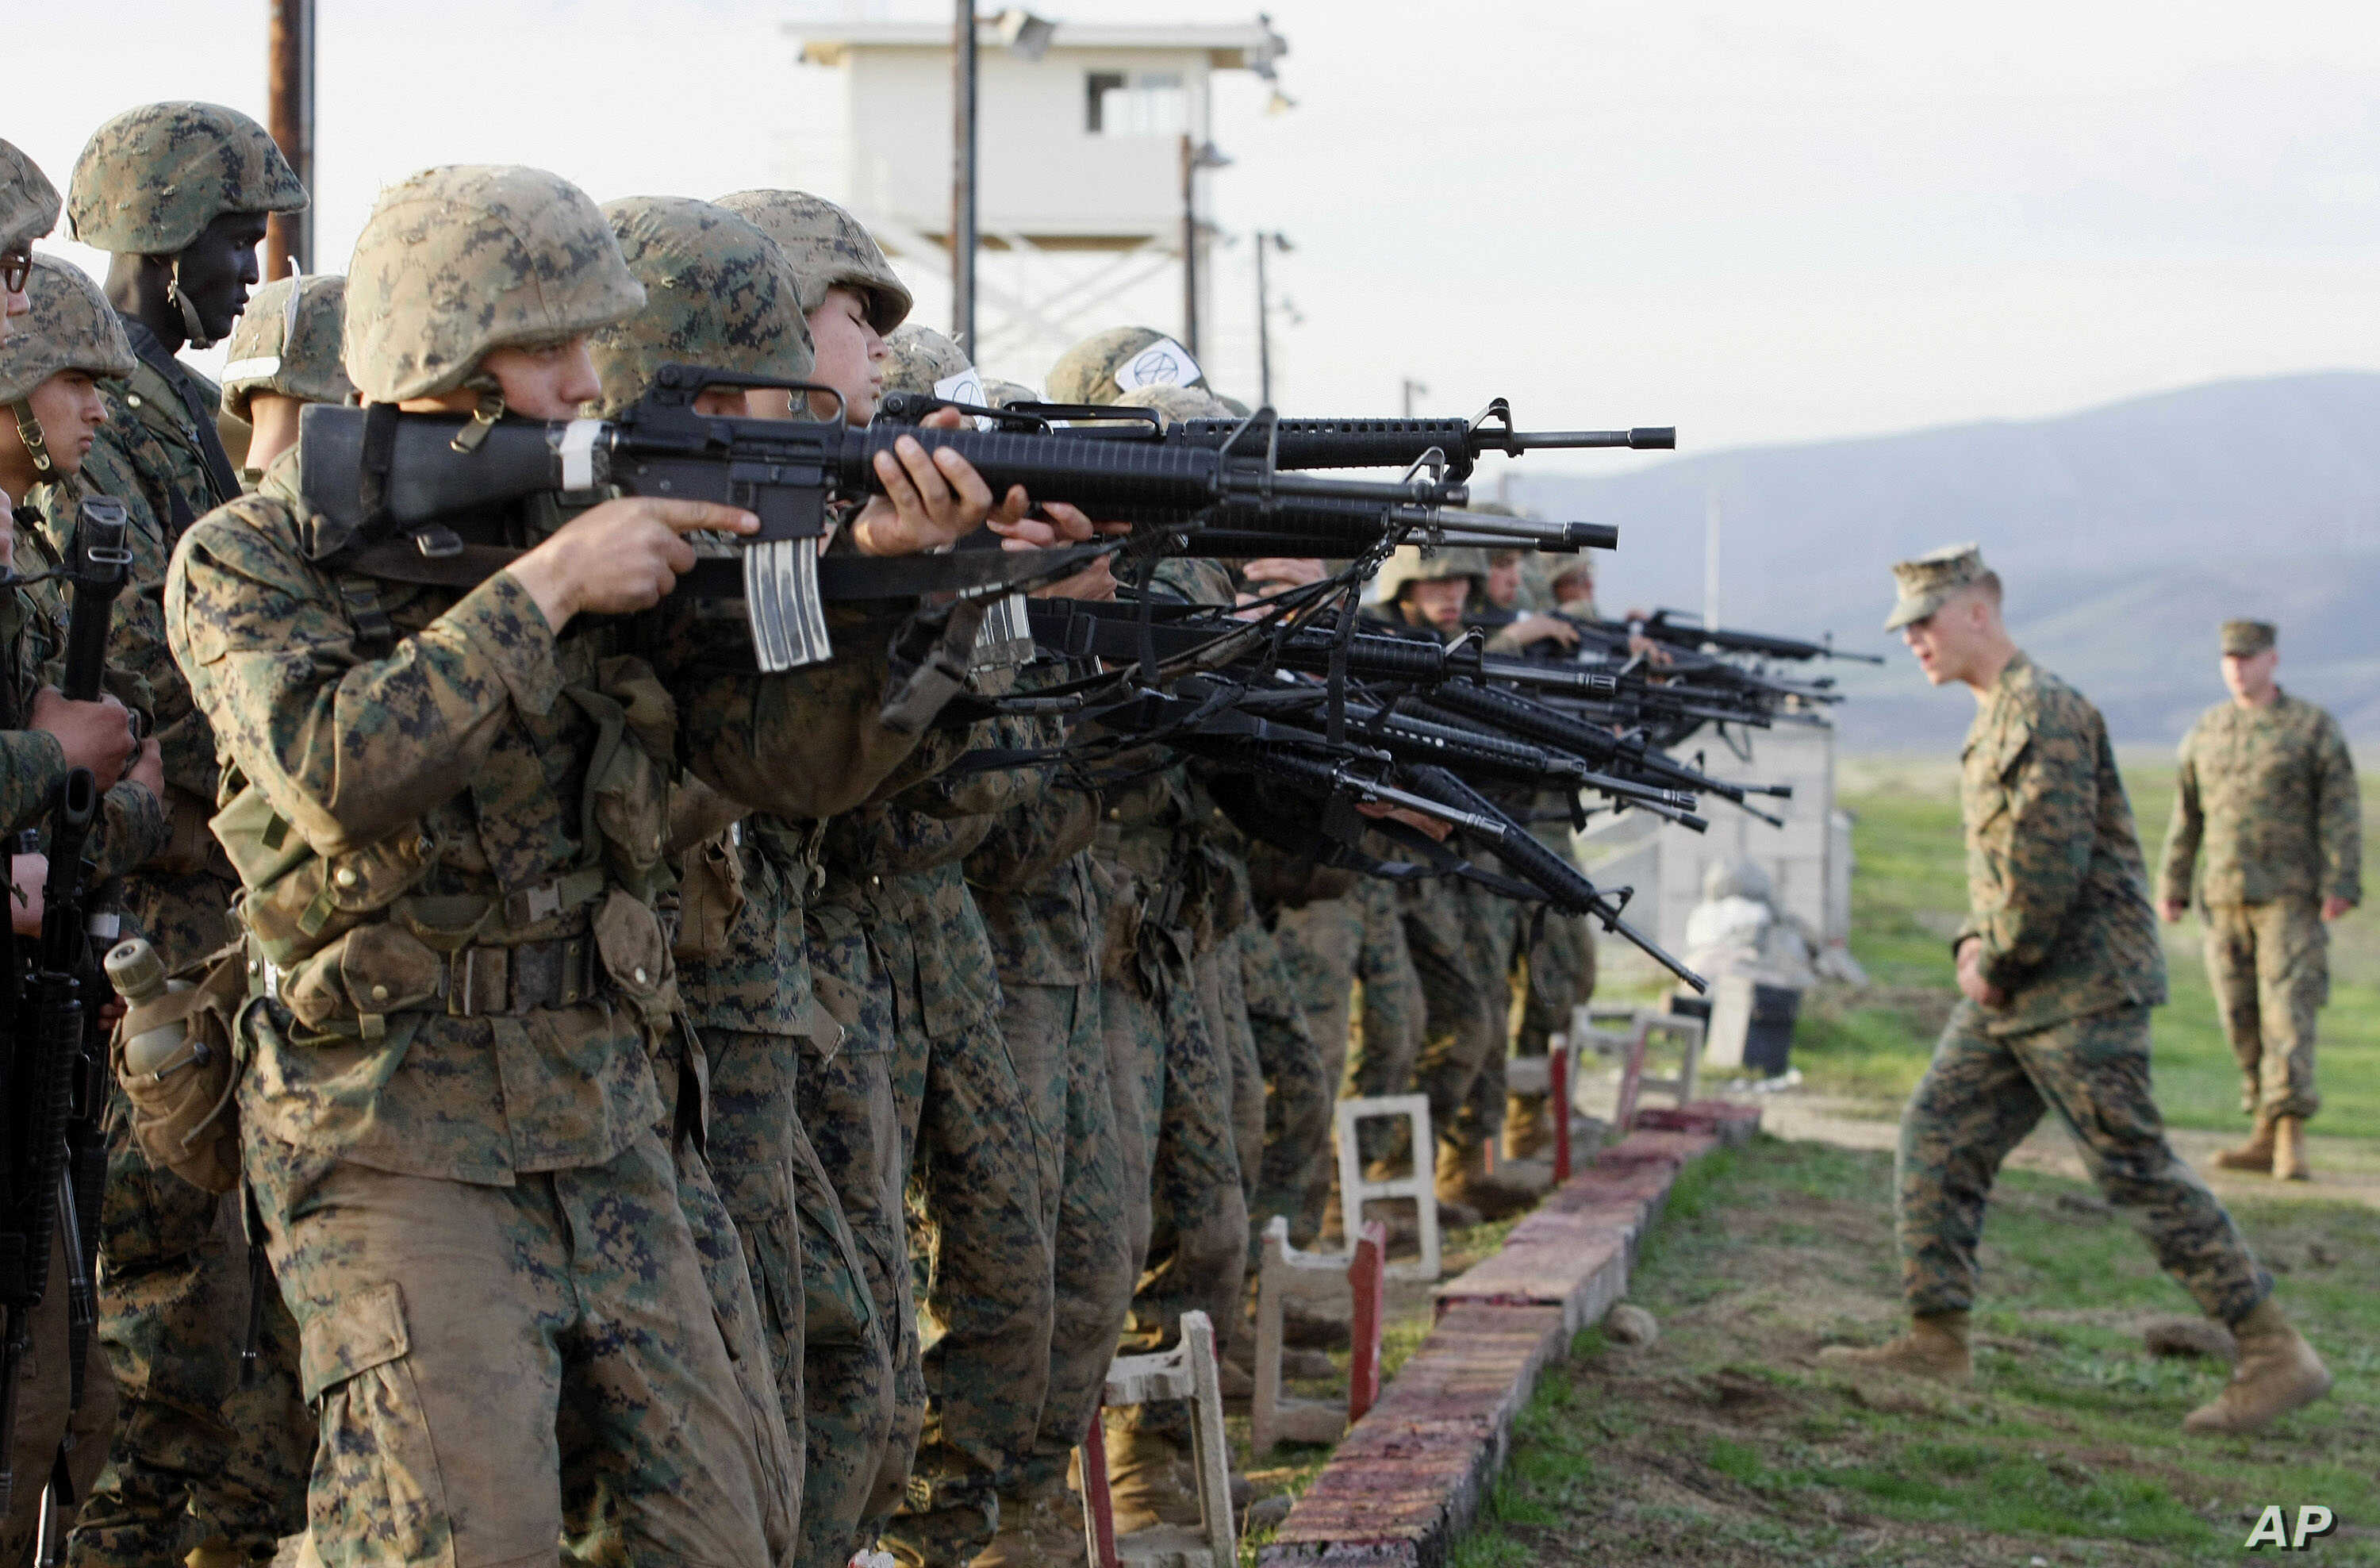 FILE - Marine Corps recruits train at the Edson Firing Range in northern San Diego County, California.